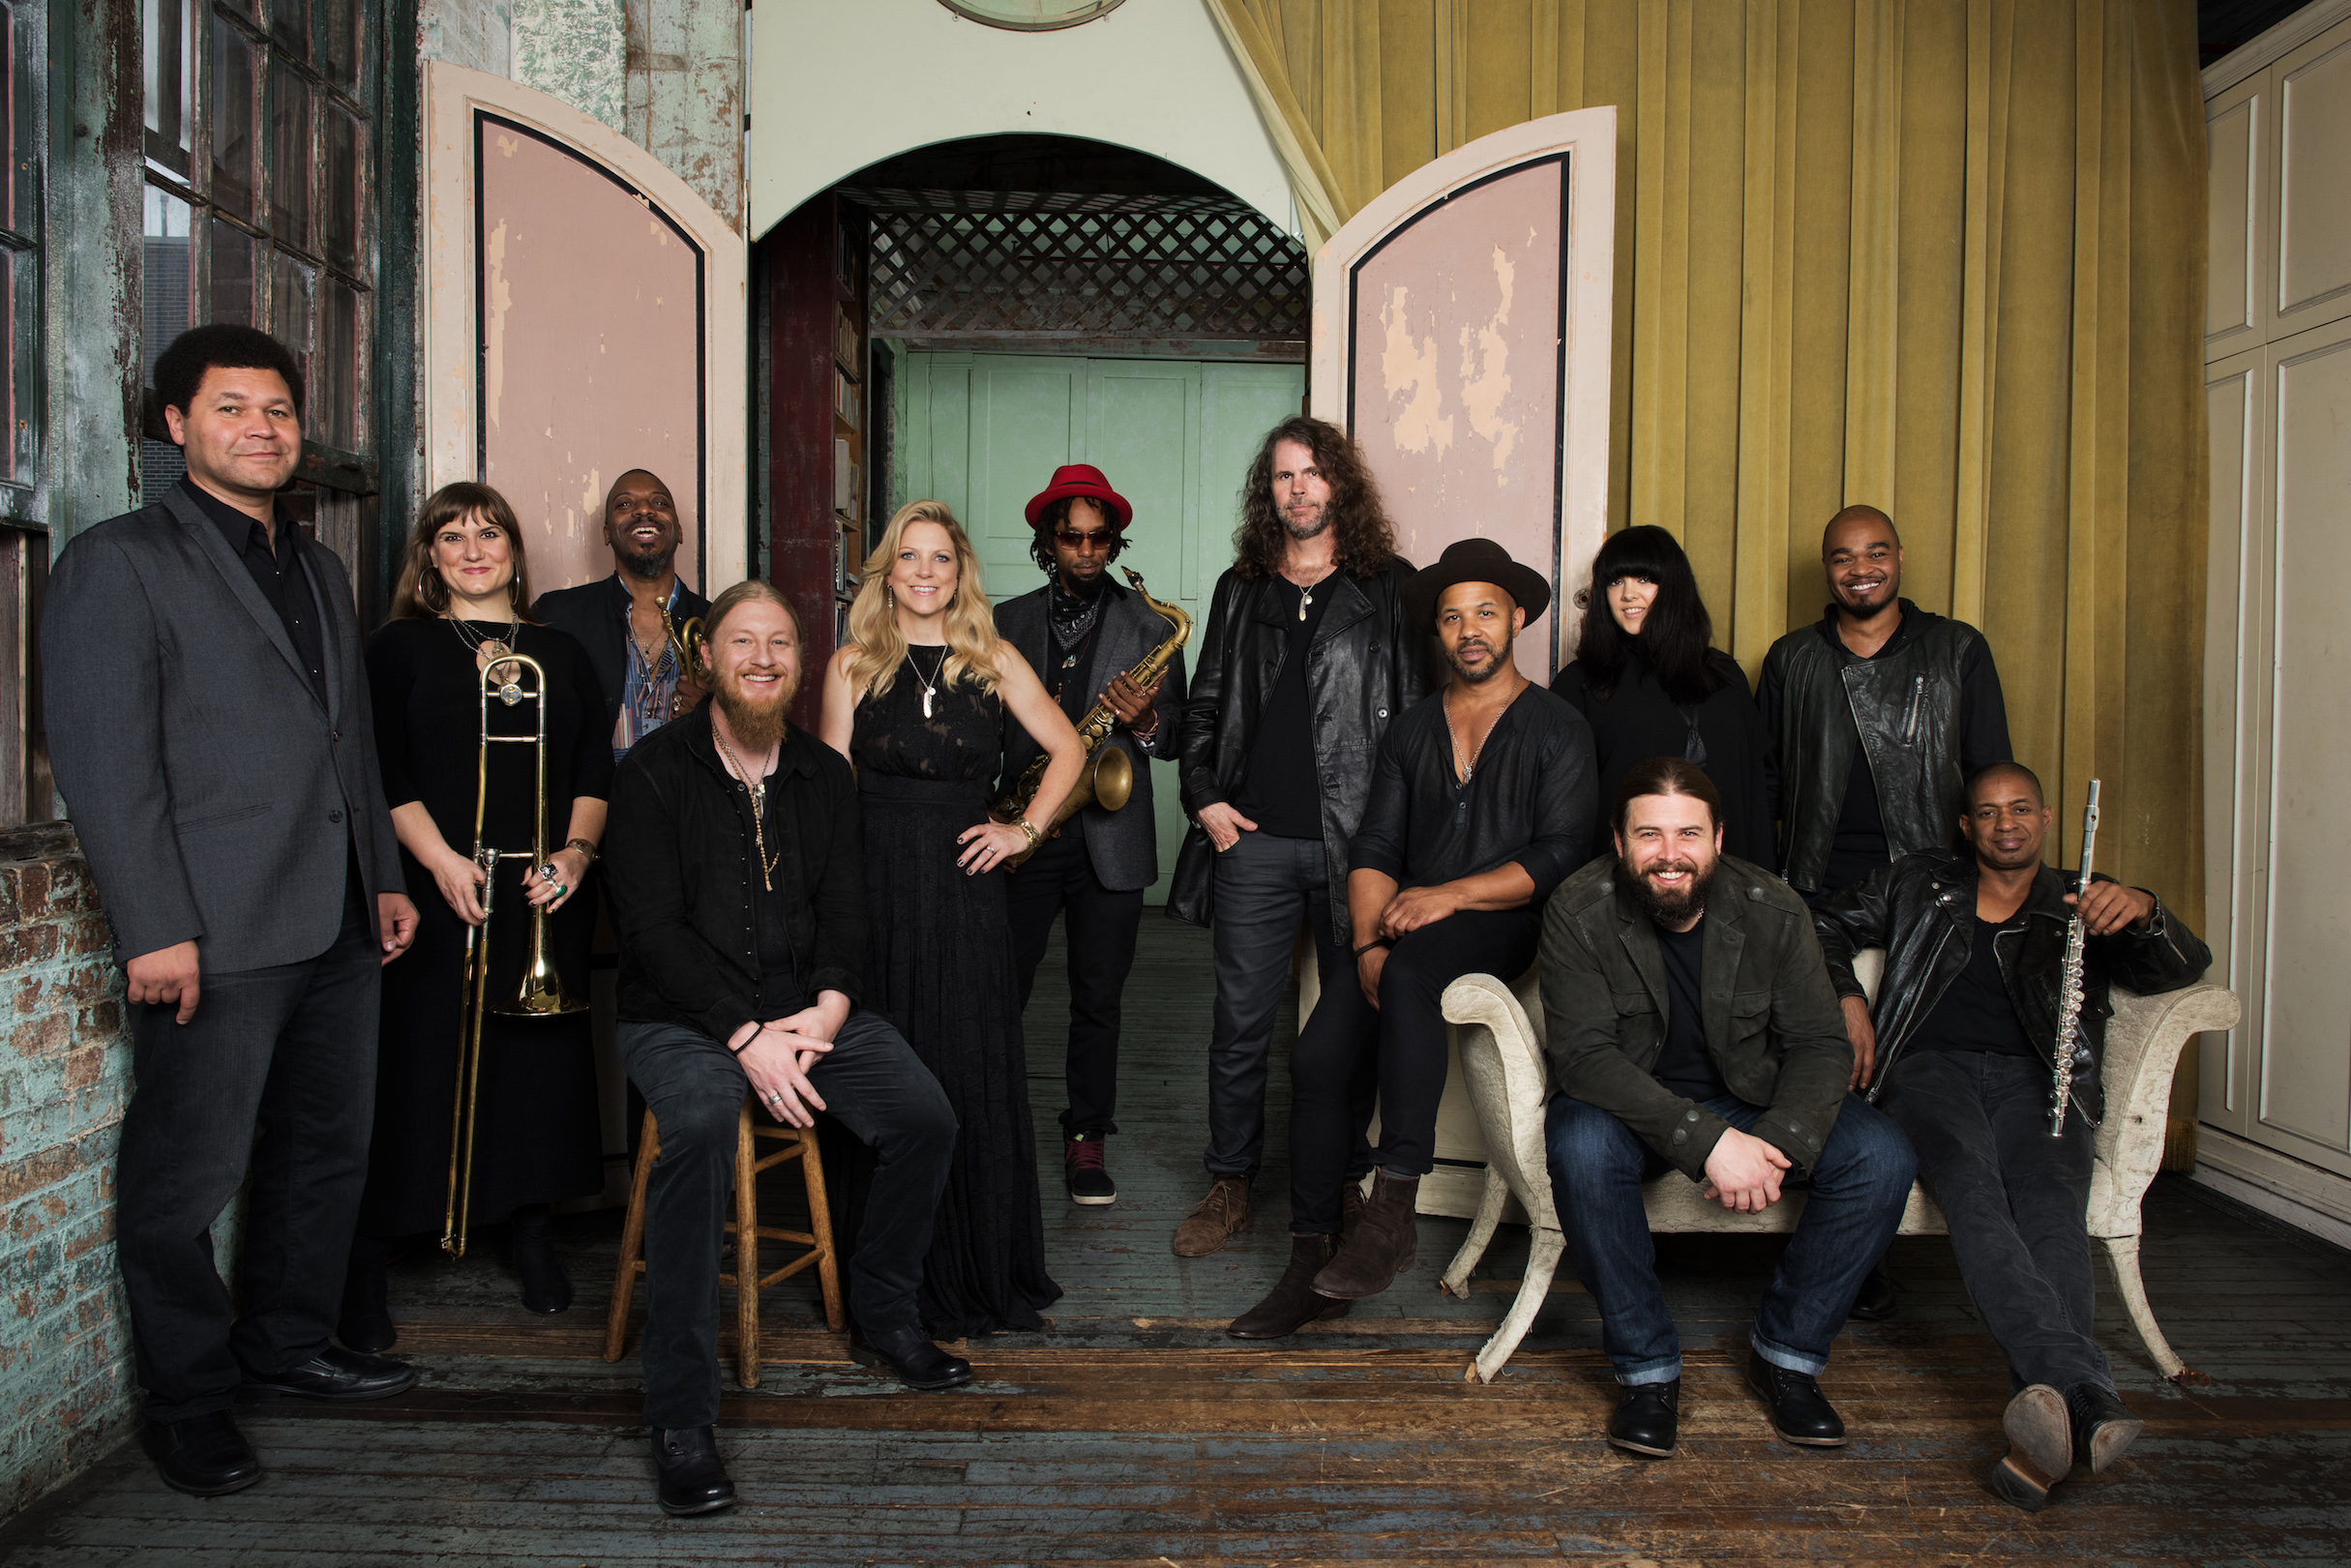 tedeschi trucks band 003 photo credit tedeschi trucks band band general use 1